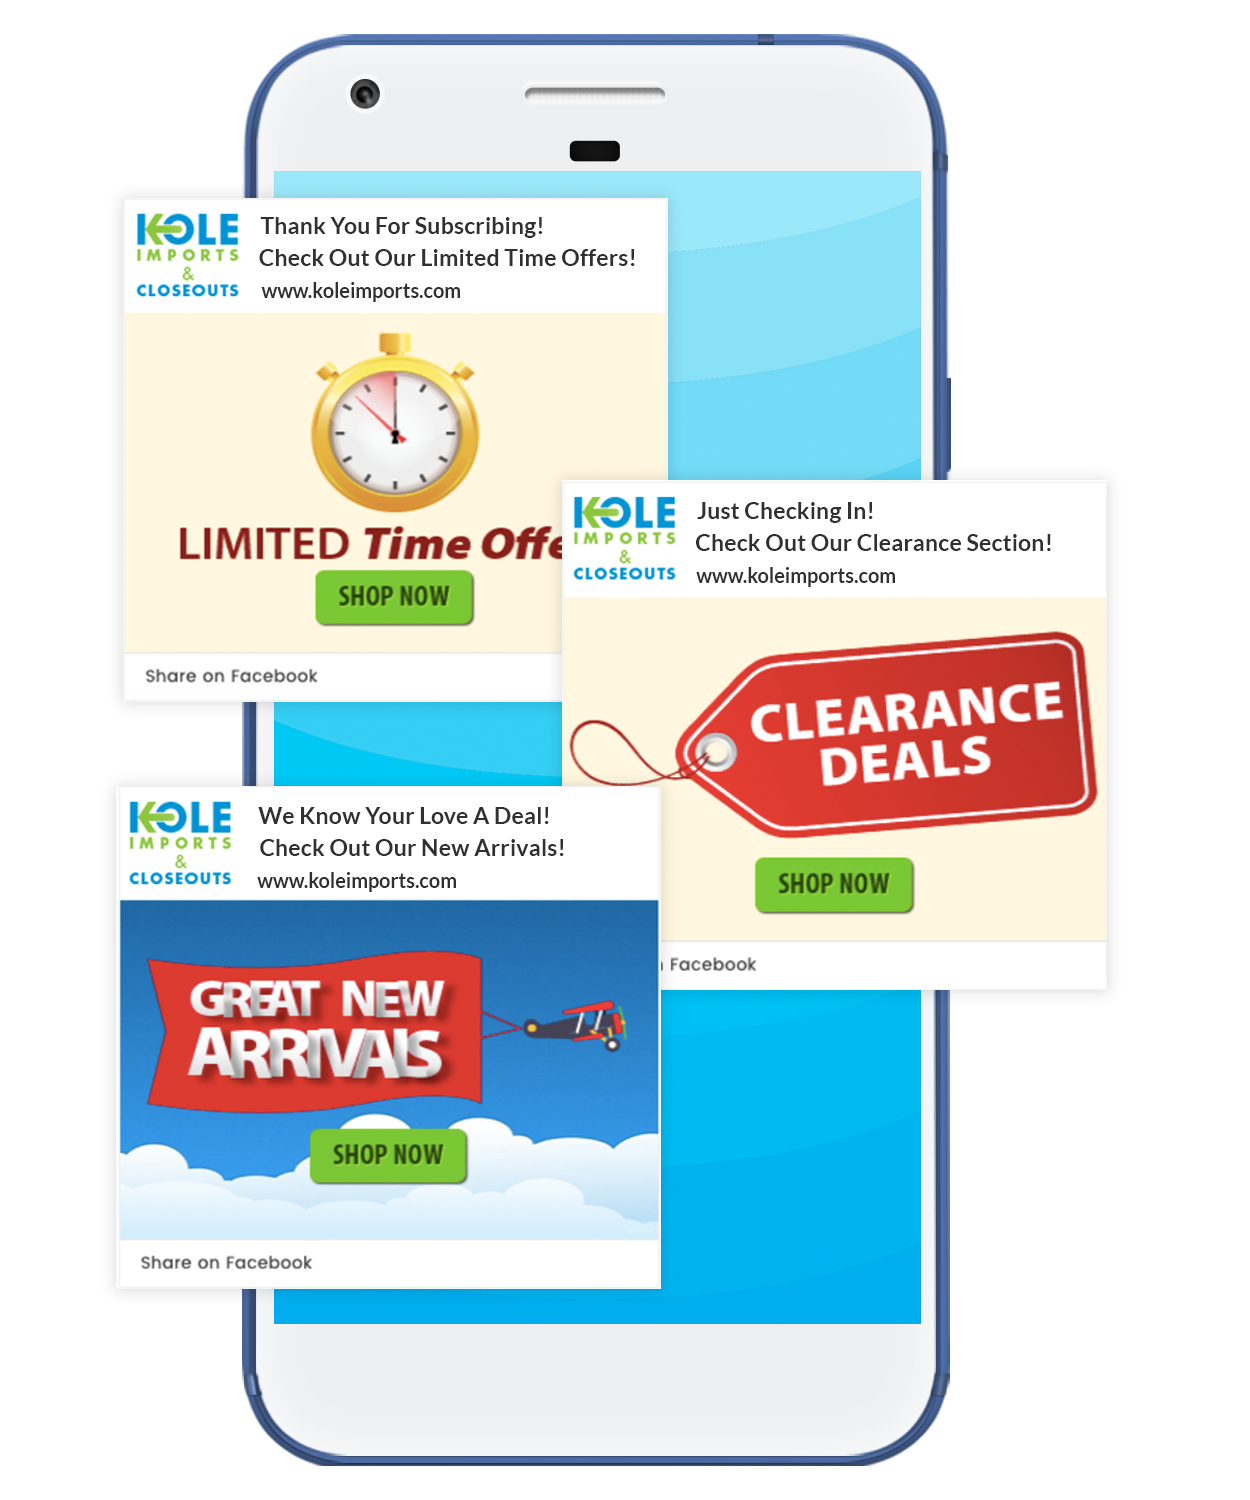 notification drip campaign with limited offers, clearance deals and new arrivals sent by Kole Imports